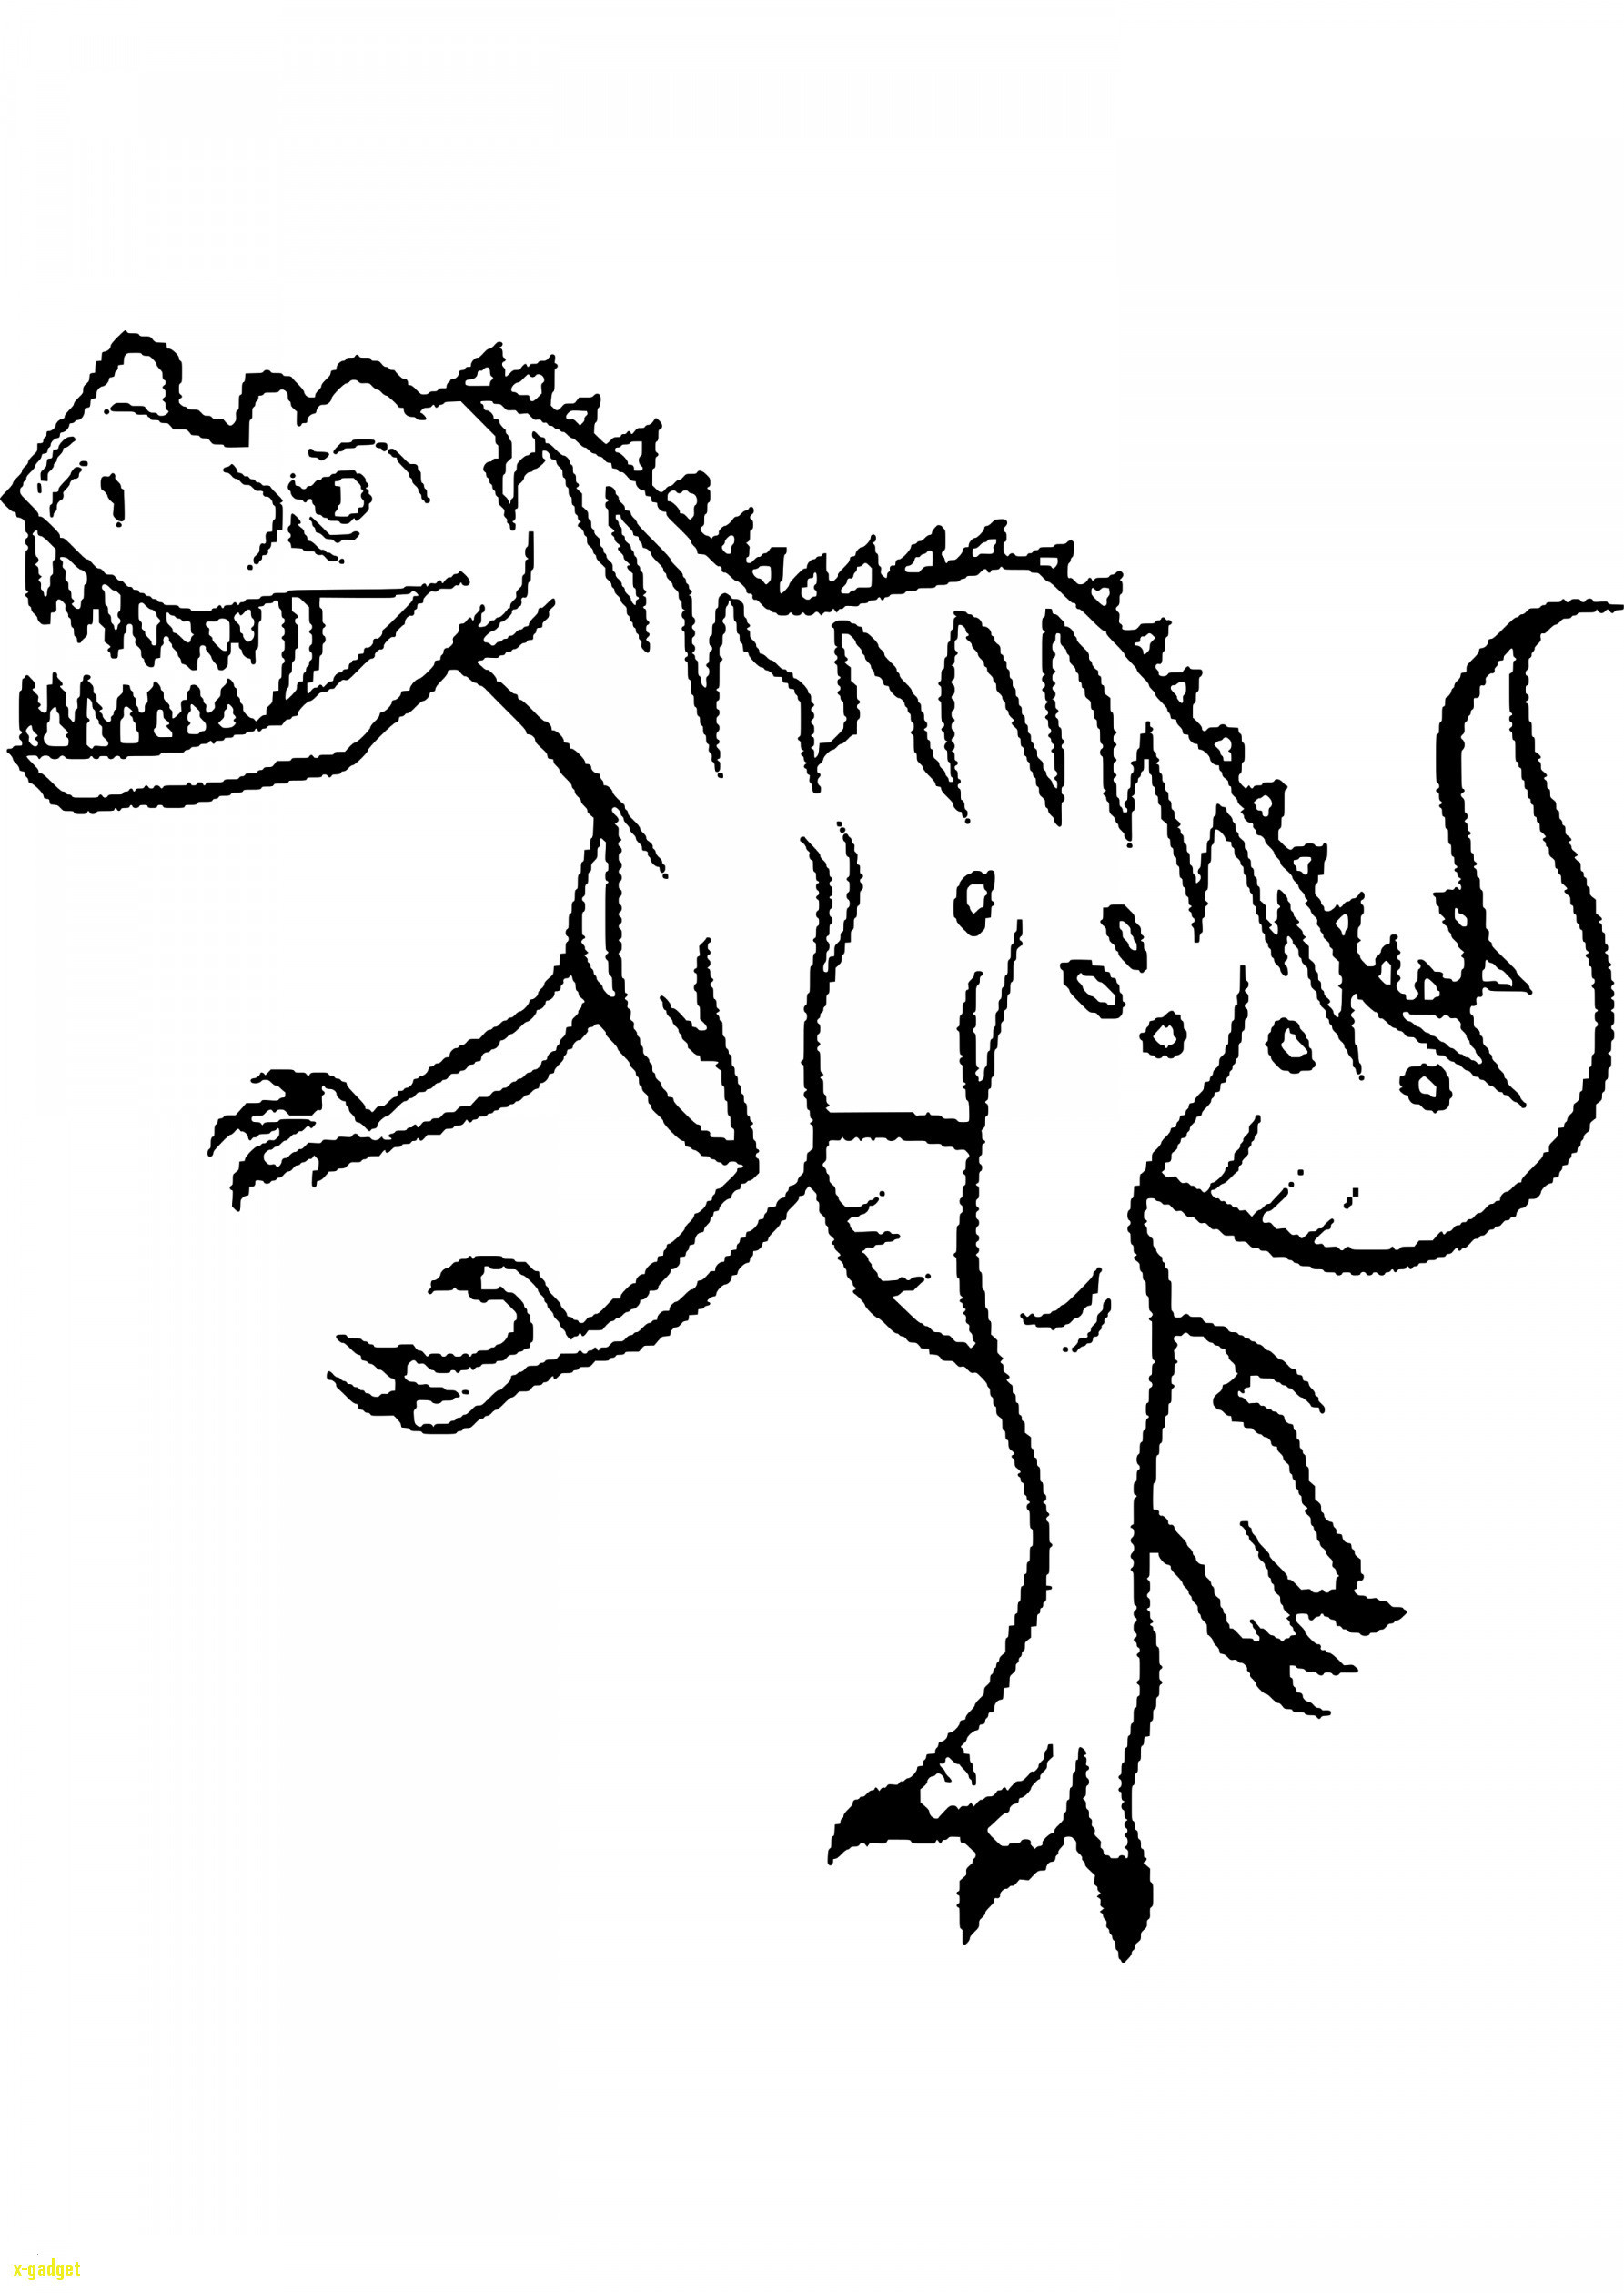 T Rex Ausmalbild Einzigartig Coloriage Dinosaure T Rex Simple Pages to Color Printable New T Rex Stock